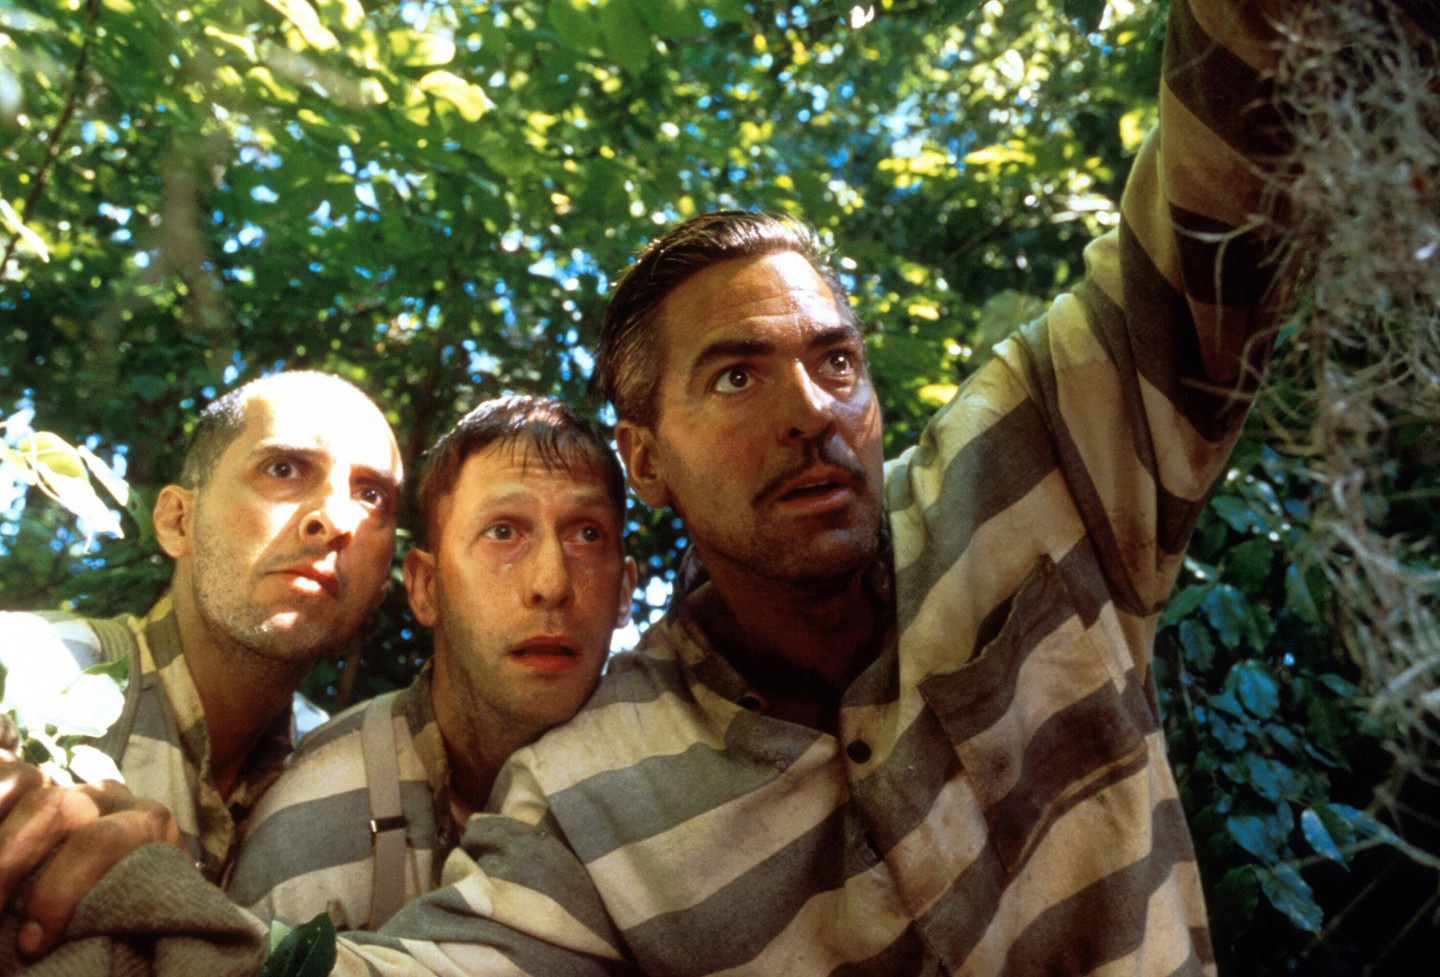 (l to r) Escaped convicts John Turturro, Tim Blake Nelson and George Clooney in O Brother, Where Art Thou? (2000)